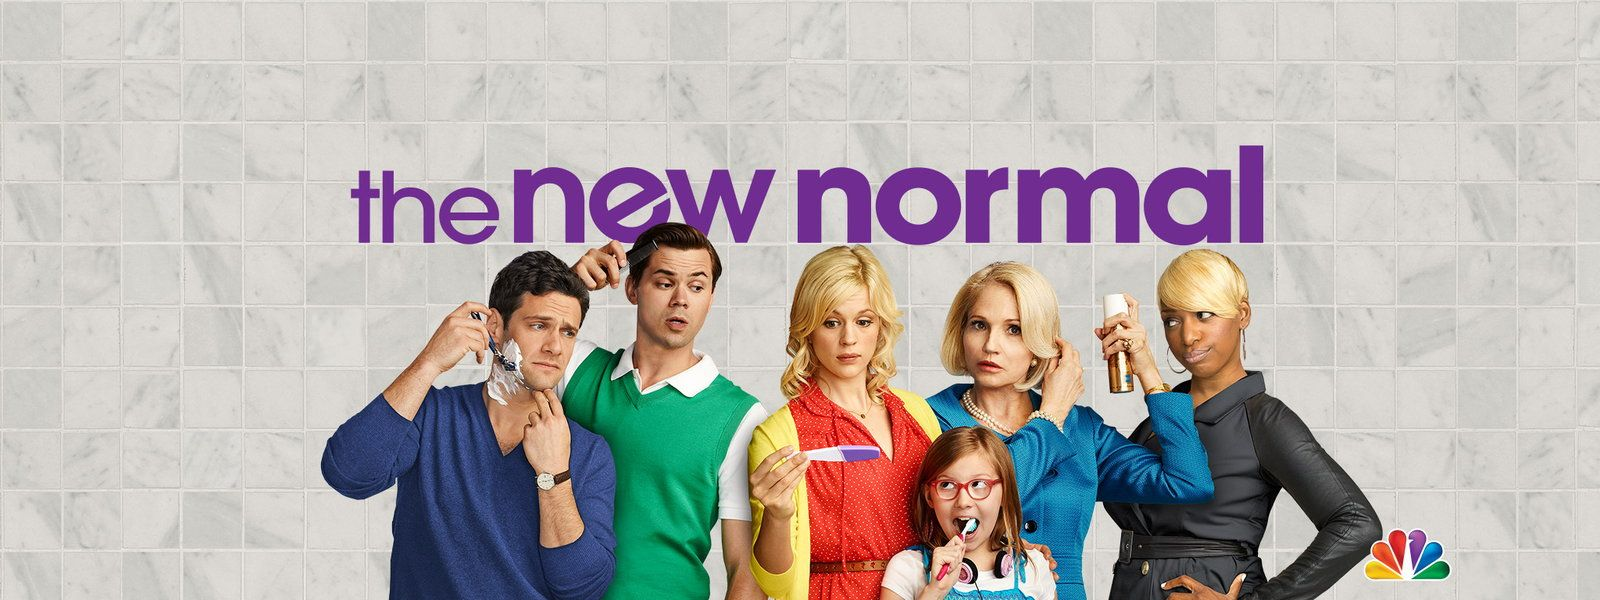 The New Normal (With images) The new normal, Couple